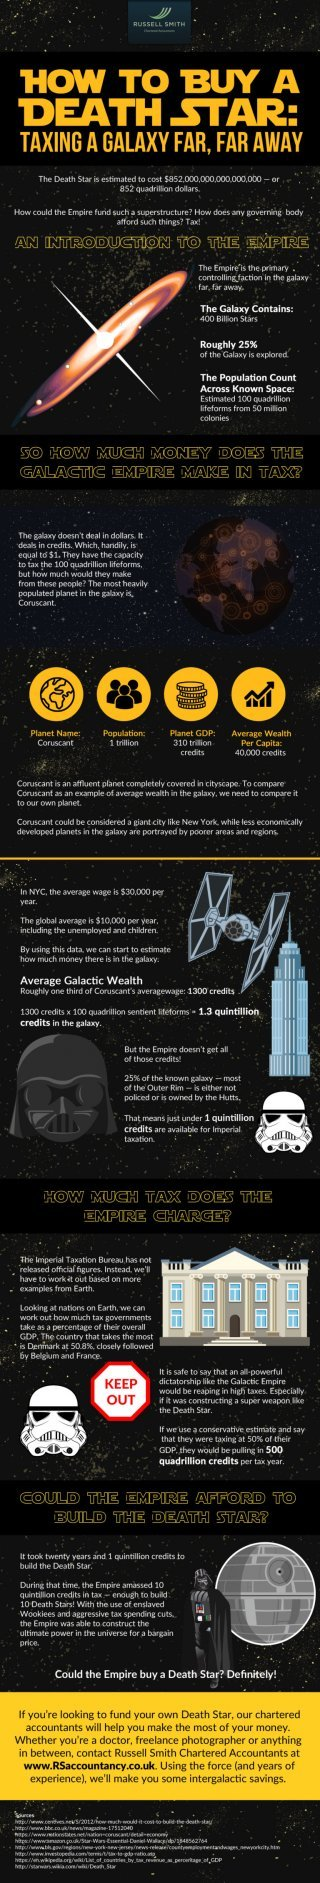 images/2017/04/02/how-to-buy-a-death-star-taxing-a-galaxy-far-far-away-infographic-768x4520.jpg